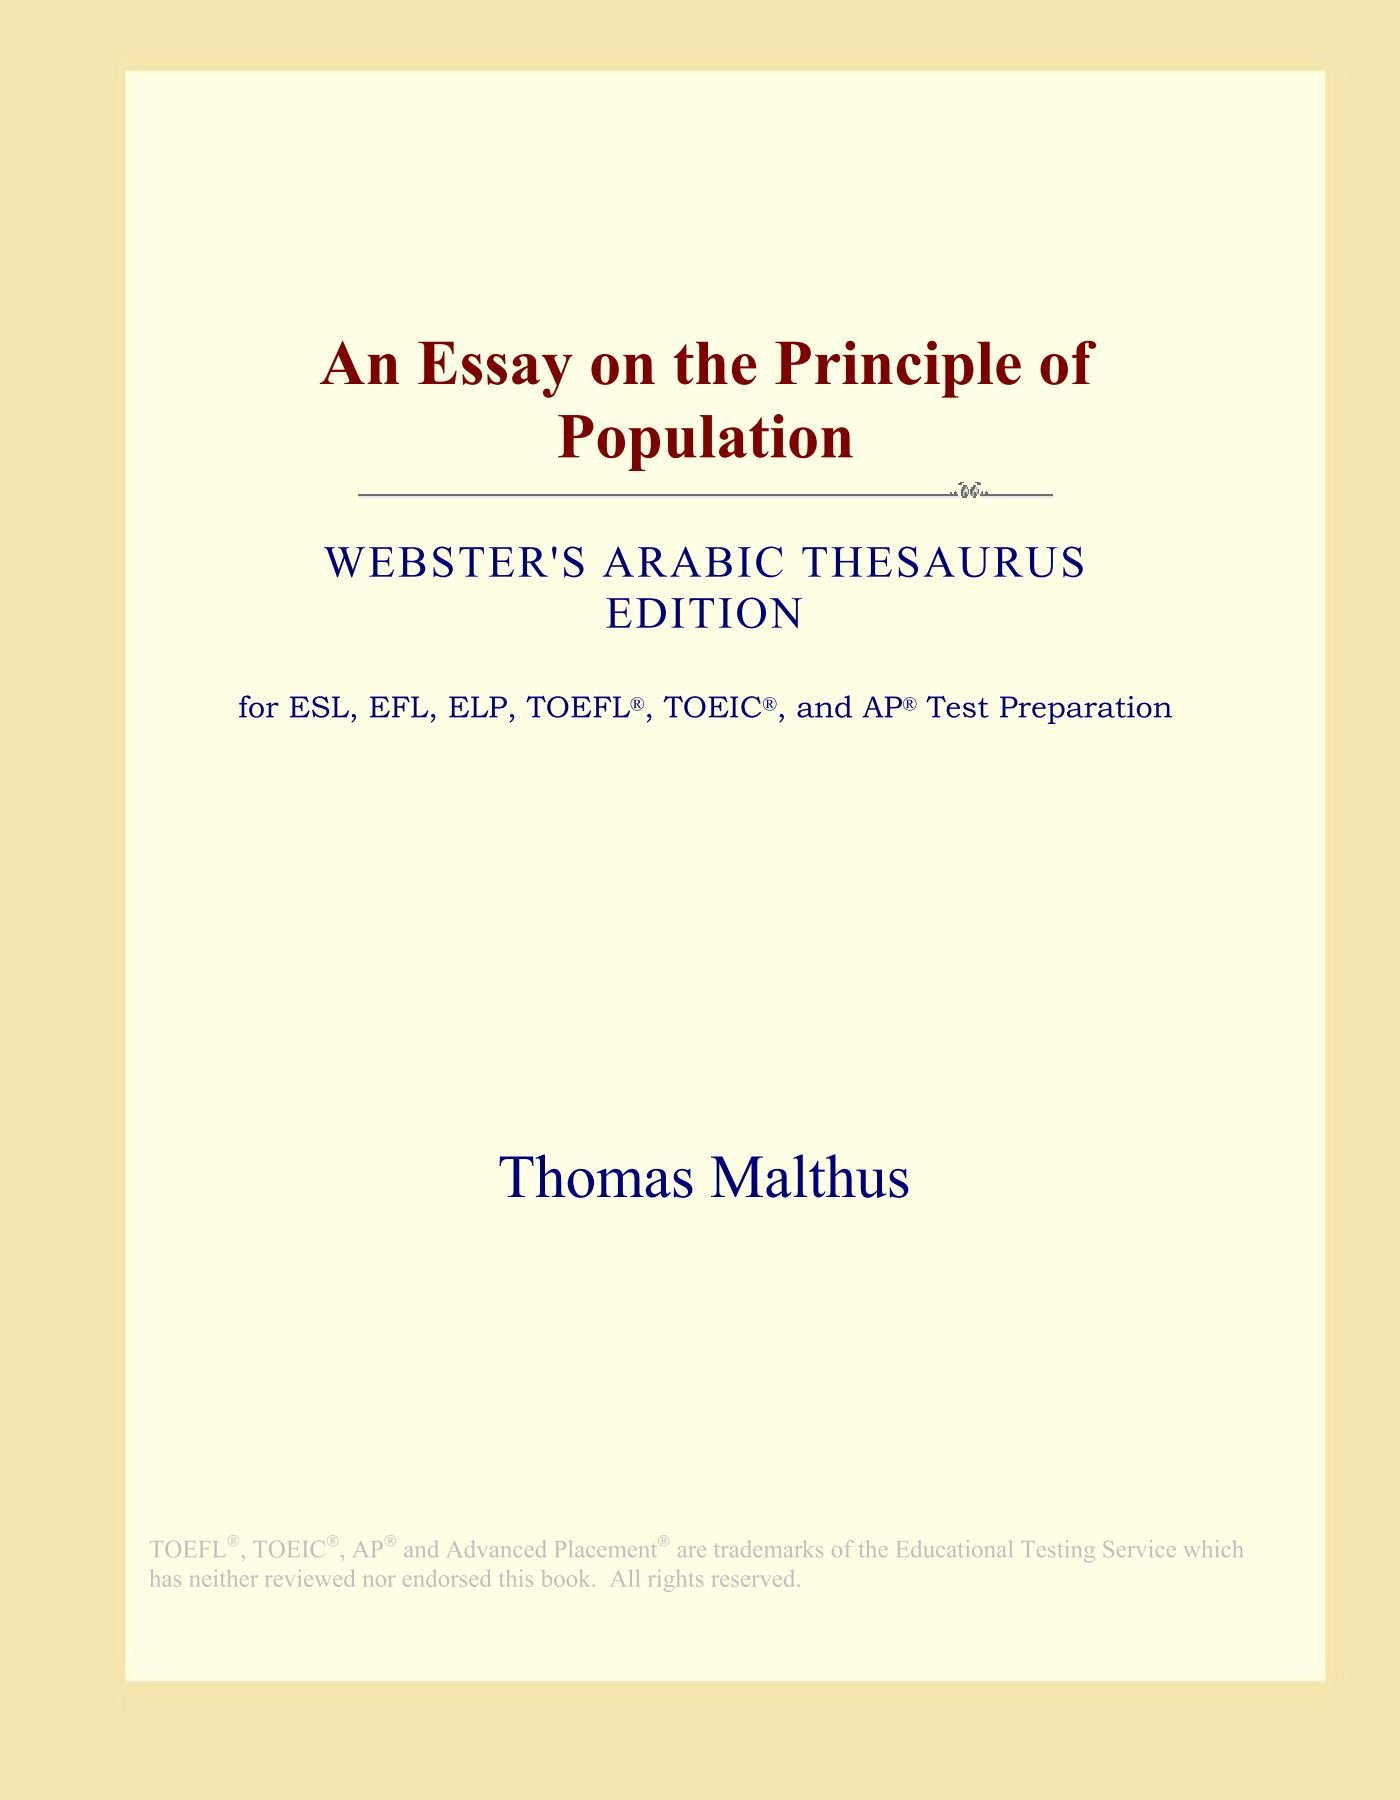 an essay on the principle of population websters arabic thesaurus  an essay on the principle of population websters arabic thesaurus  edition paperback  june